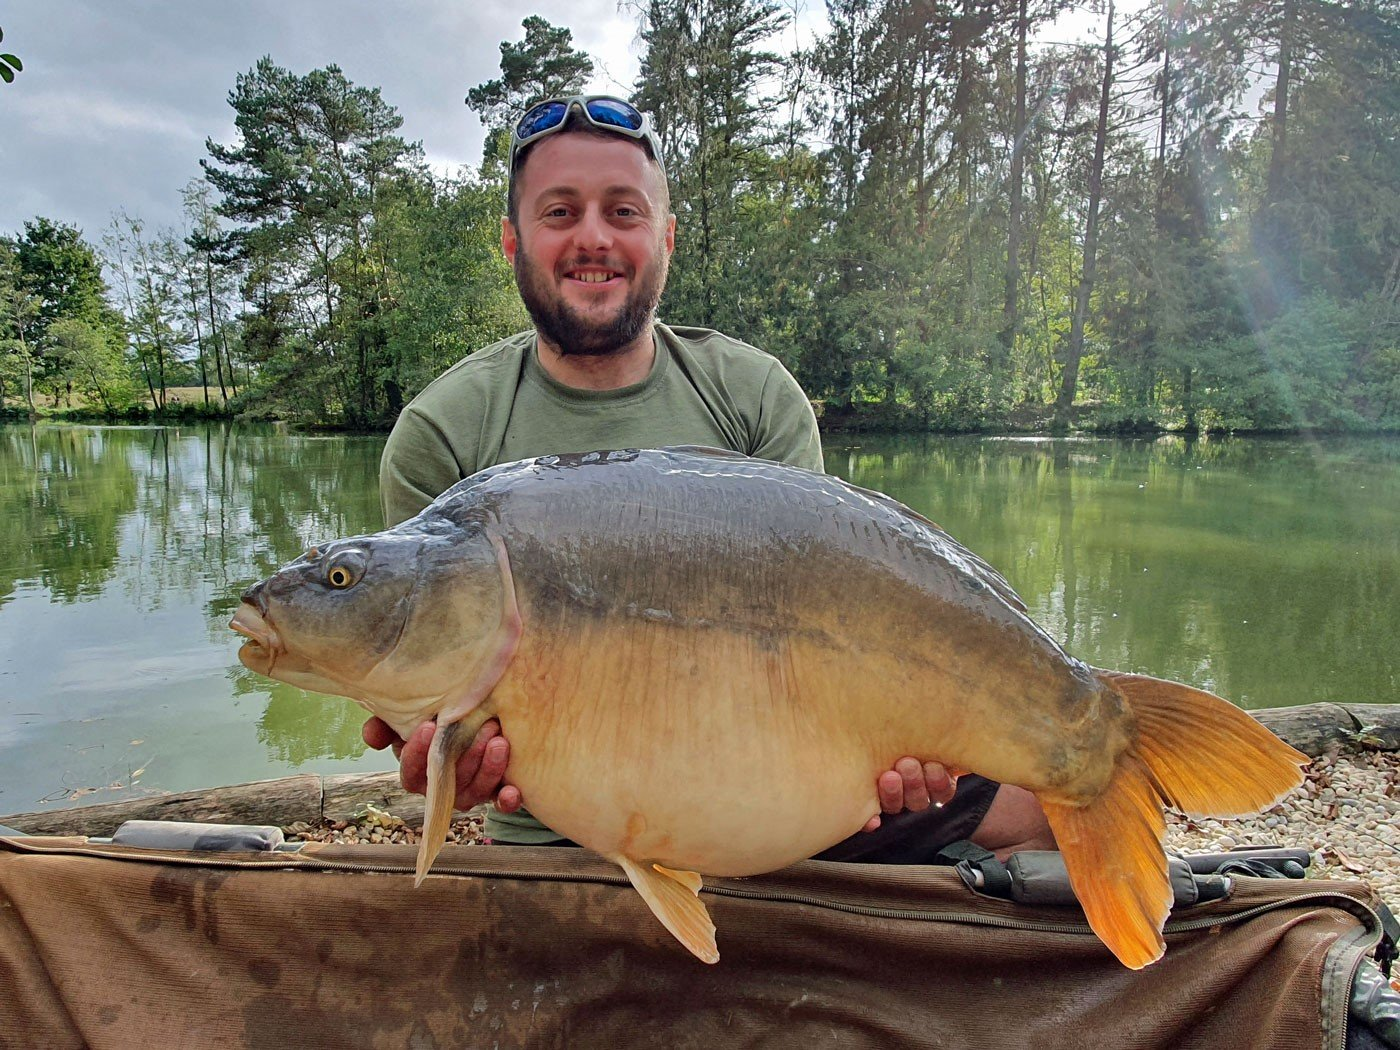 dan carp fishing in france with a 36lb mirror carp